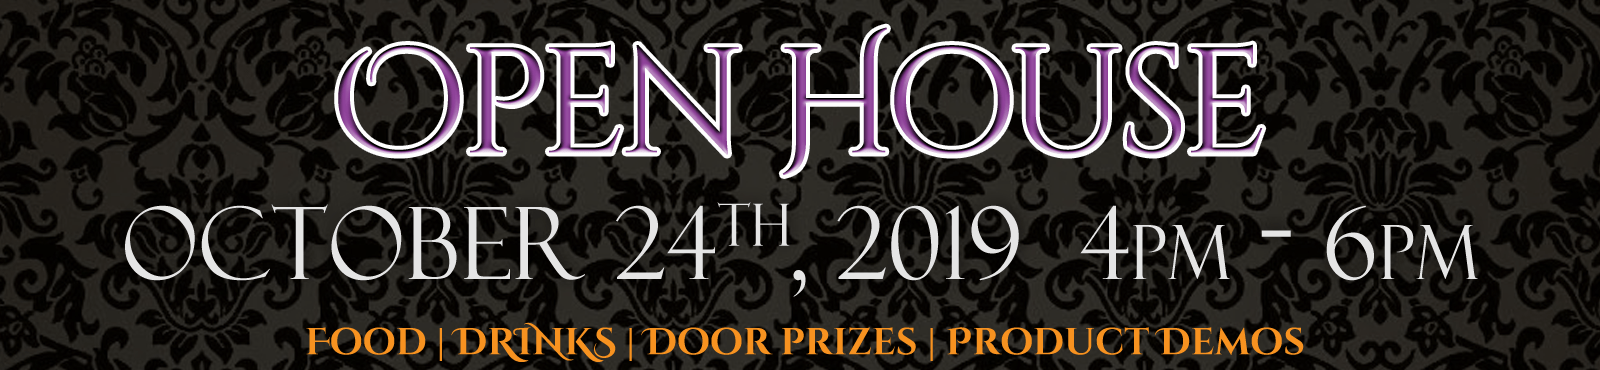 2019_Open_House_Header